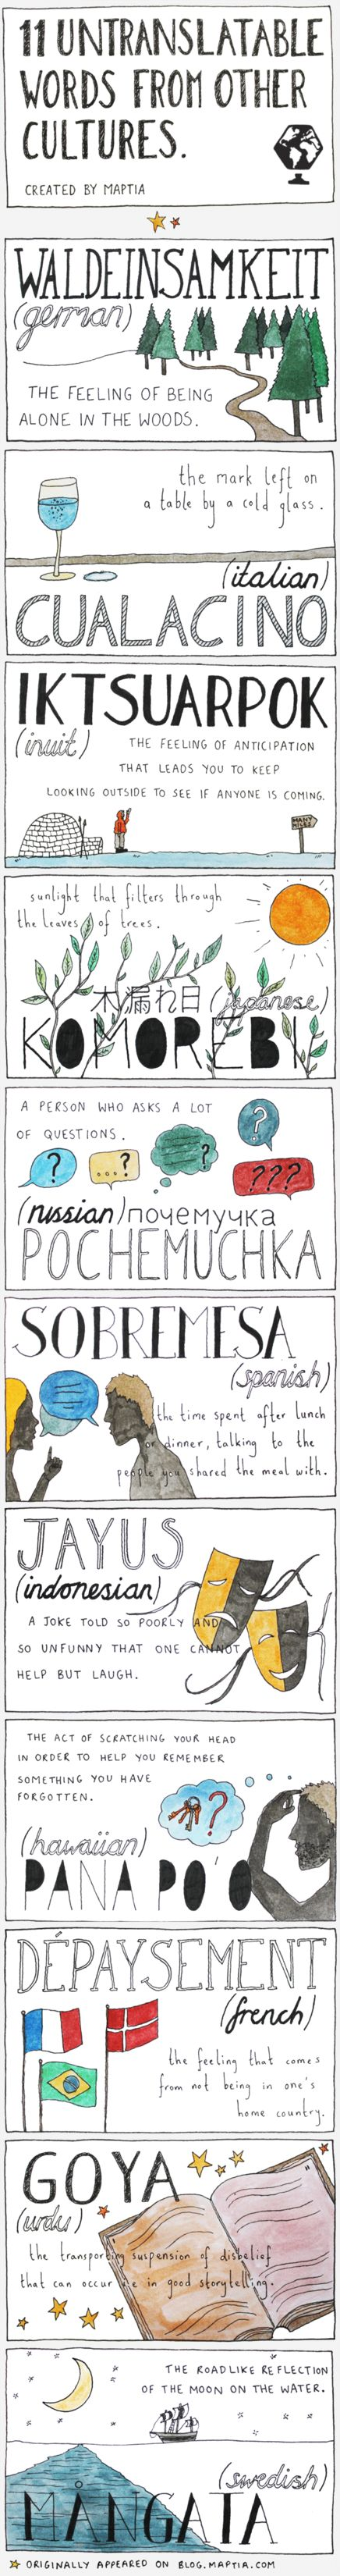 11 Untranslatable Words from other Cultures - Eleven wonderful, must-know, elusive words which have no single word within the English language that could be considered a direct translation. I must use these!